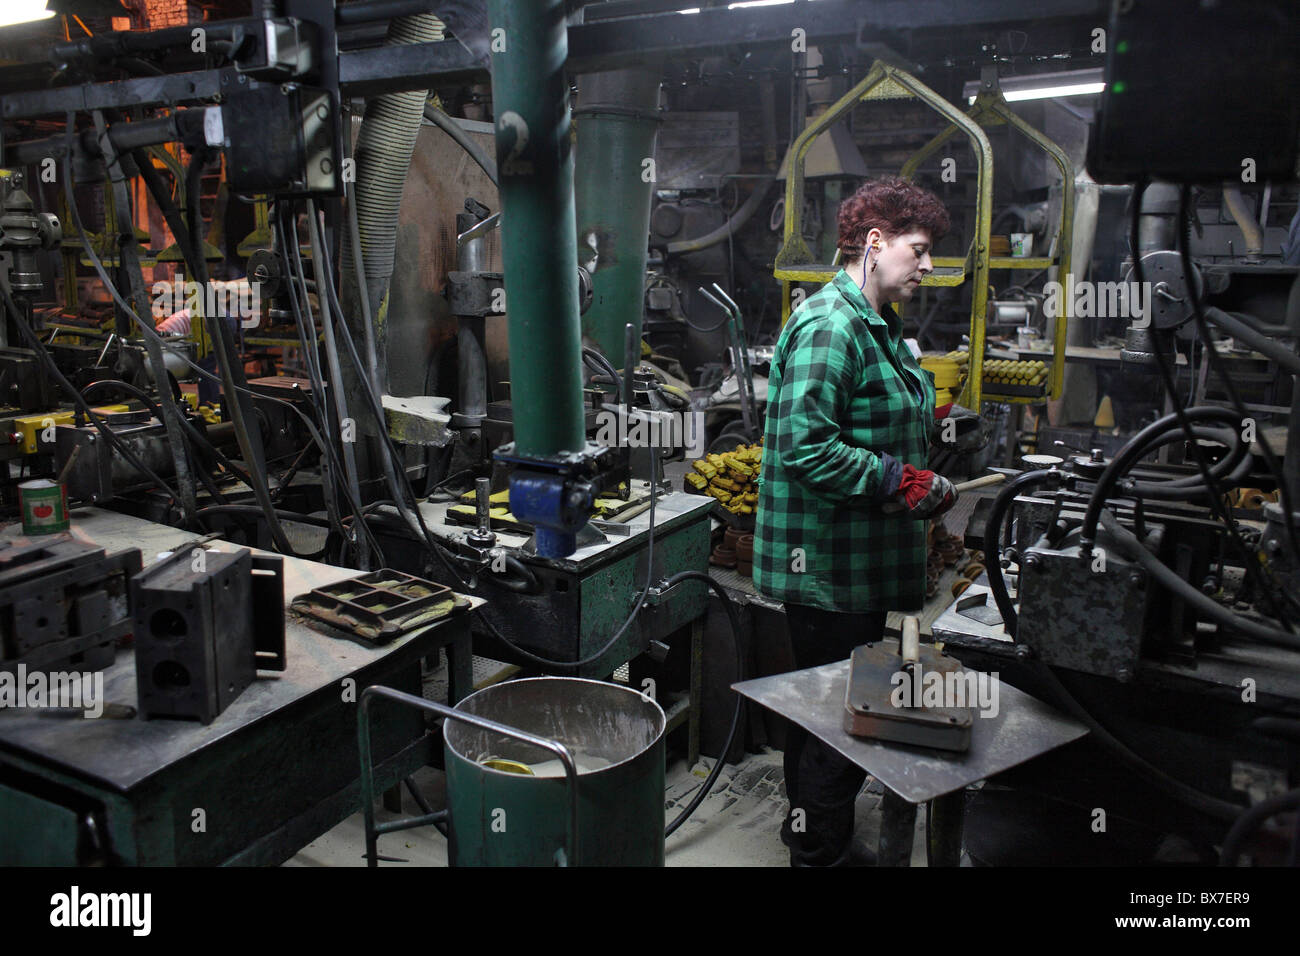 Core-making shop for agricultural machinery, Poznan, Poland - Stock Image